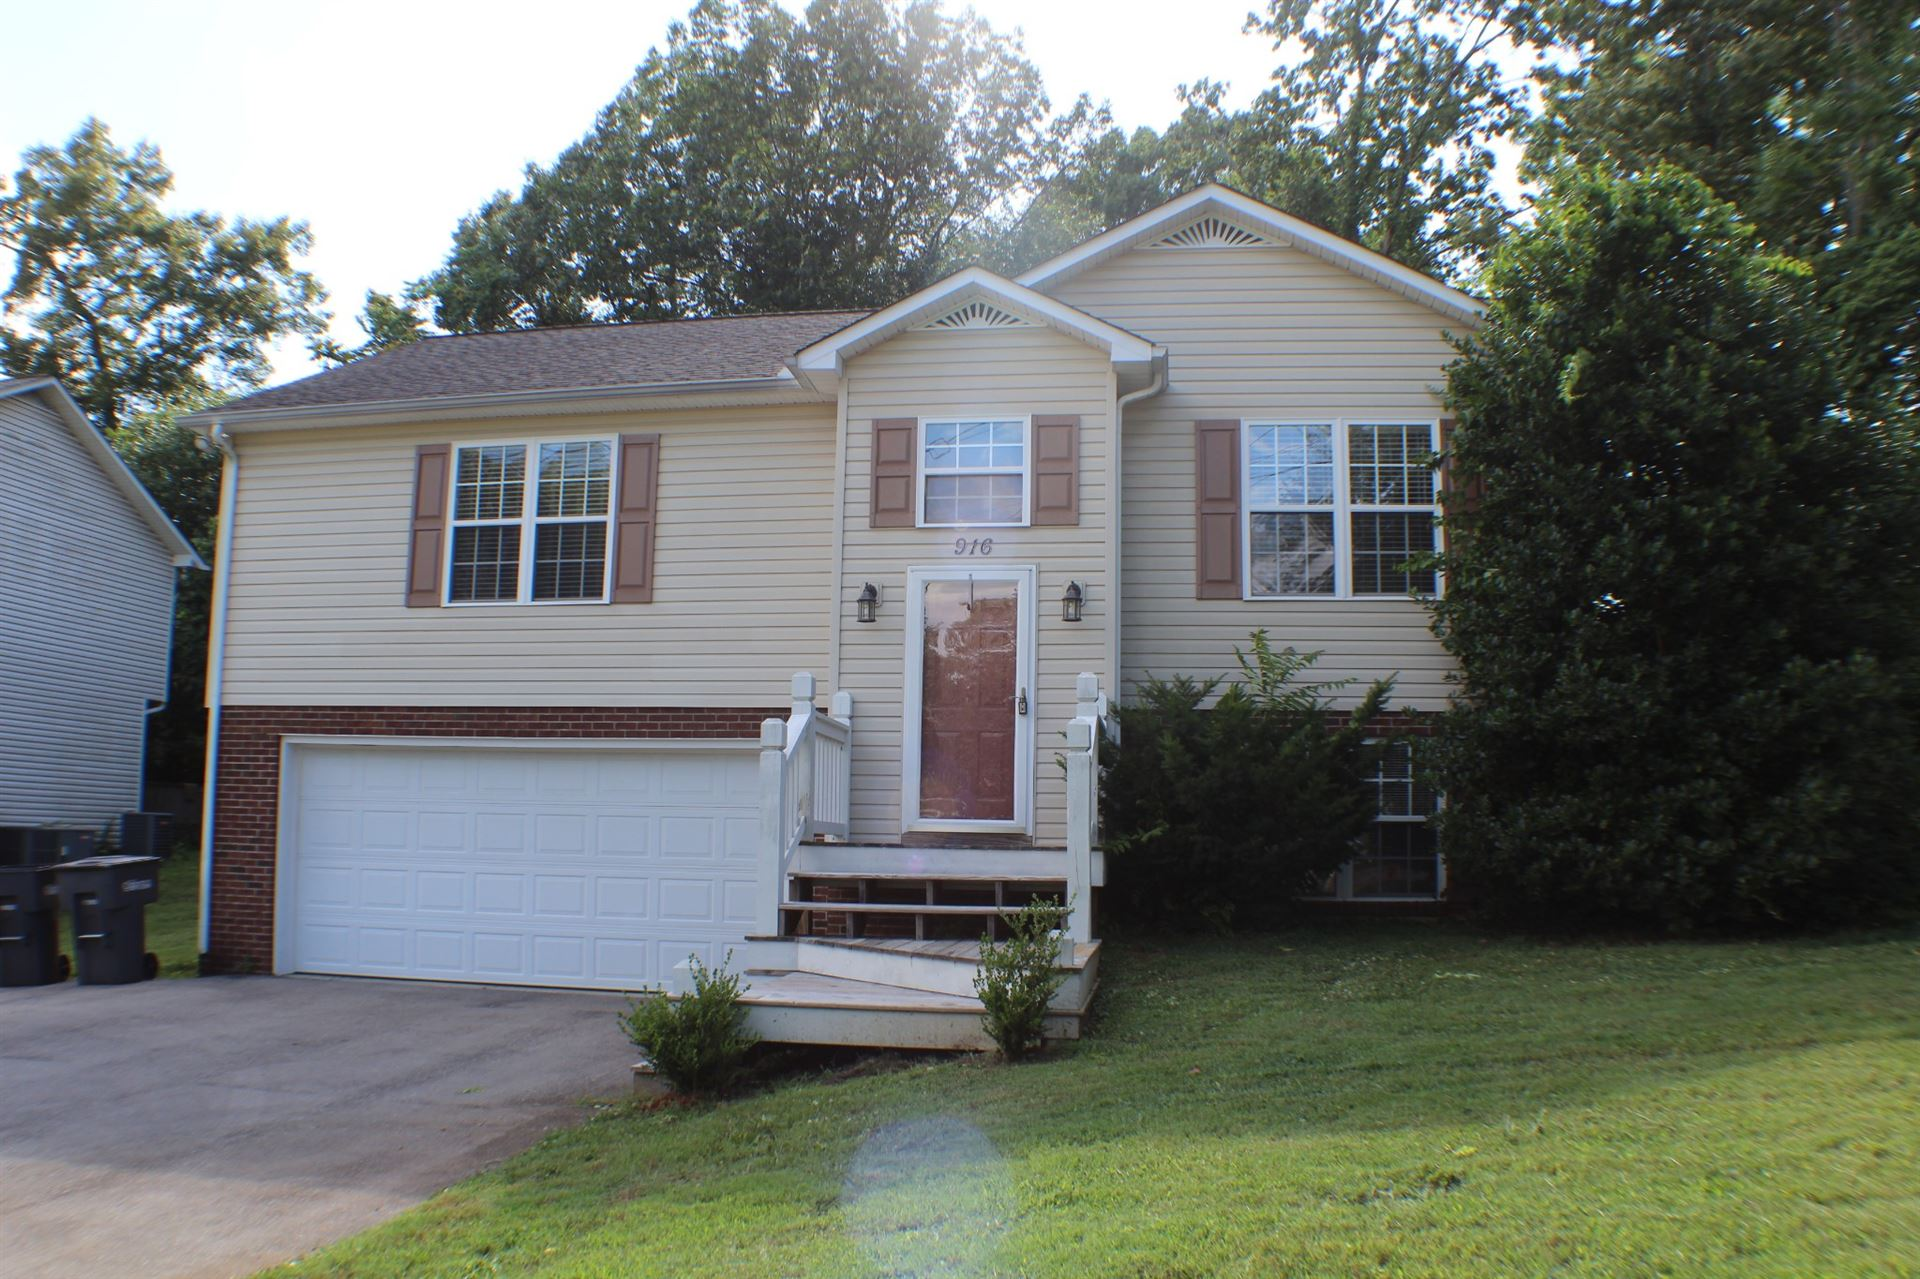 916 Bill Smith Rd, Cookeville, TN 38501 - MLS#: 2210894